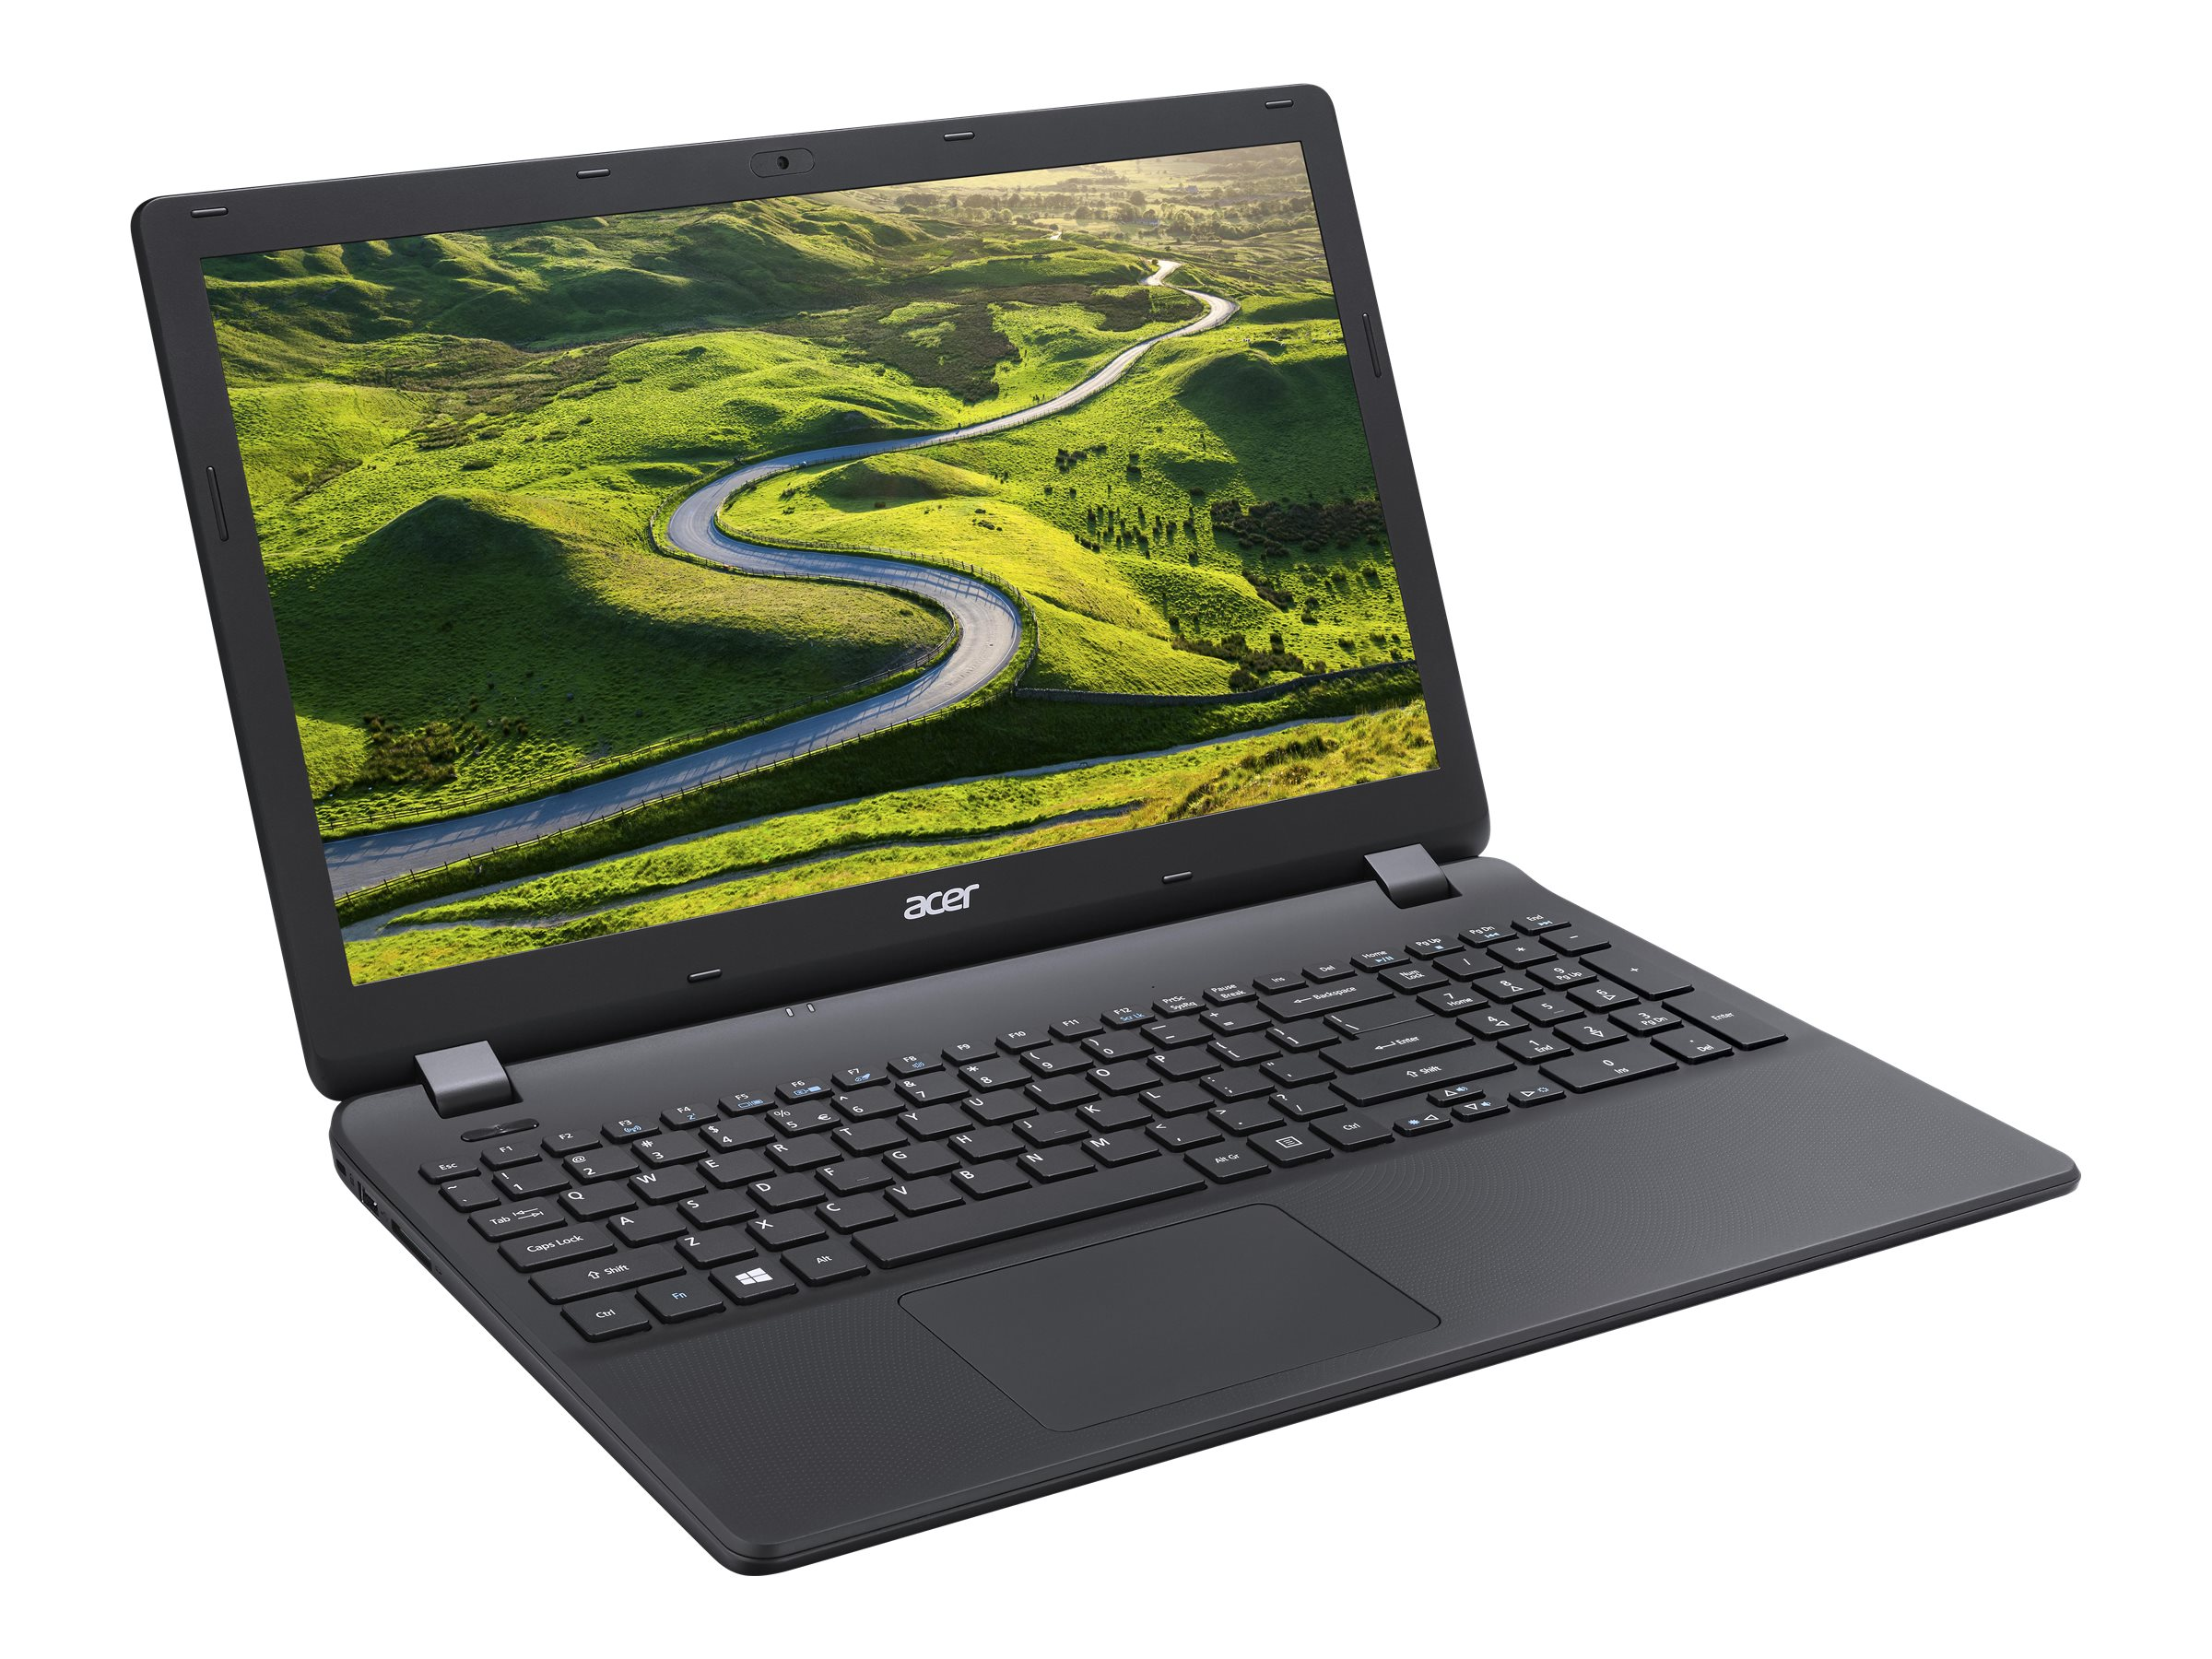 Acer NX.GCEAA.003 Image 3